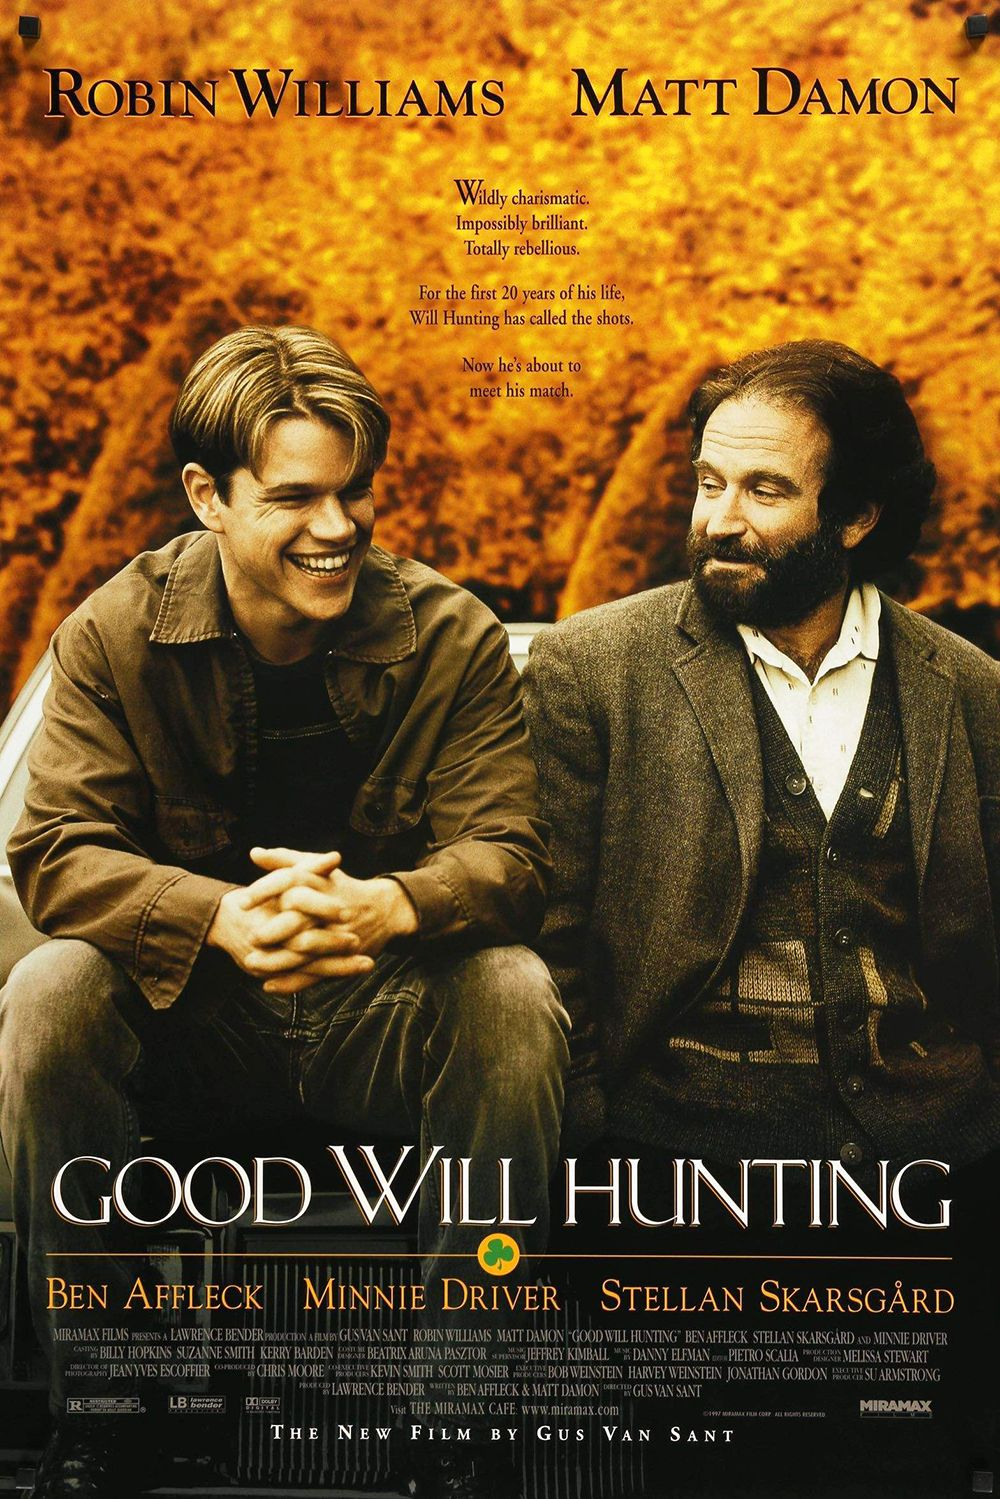 Good Will Hunting (1997) 20-year-old Will Hunting (Matt Damon) punches a police officer, is allowed deferred prosecution, and seeks therapy and mathematics tutoring from a renowned professor (Robin Williams). Ben Affleck and Matt Damon wrote the film together, and won an Academy Award for Best Original Screenplay.